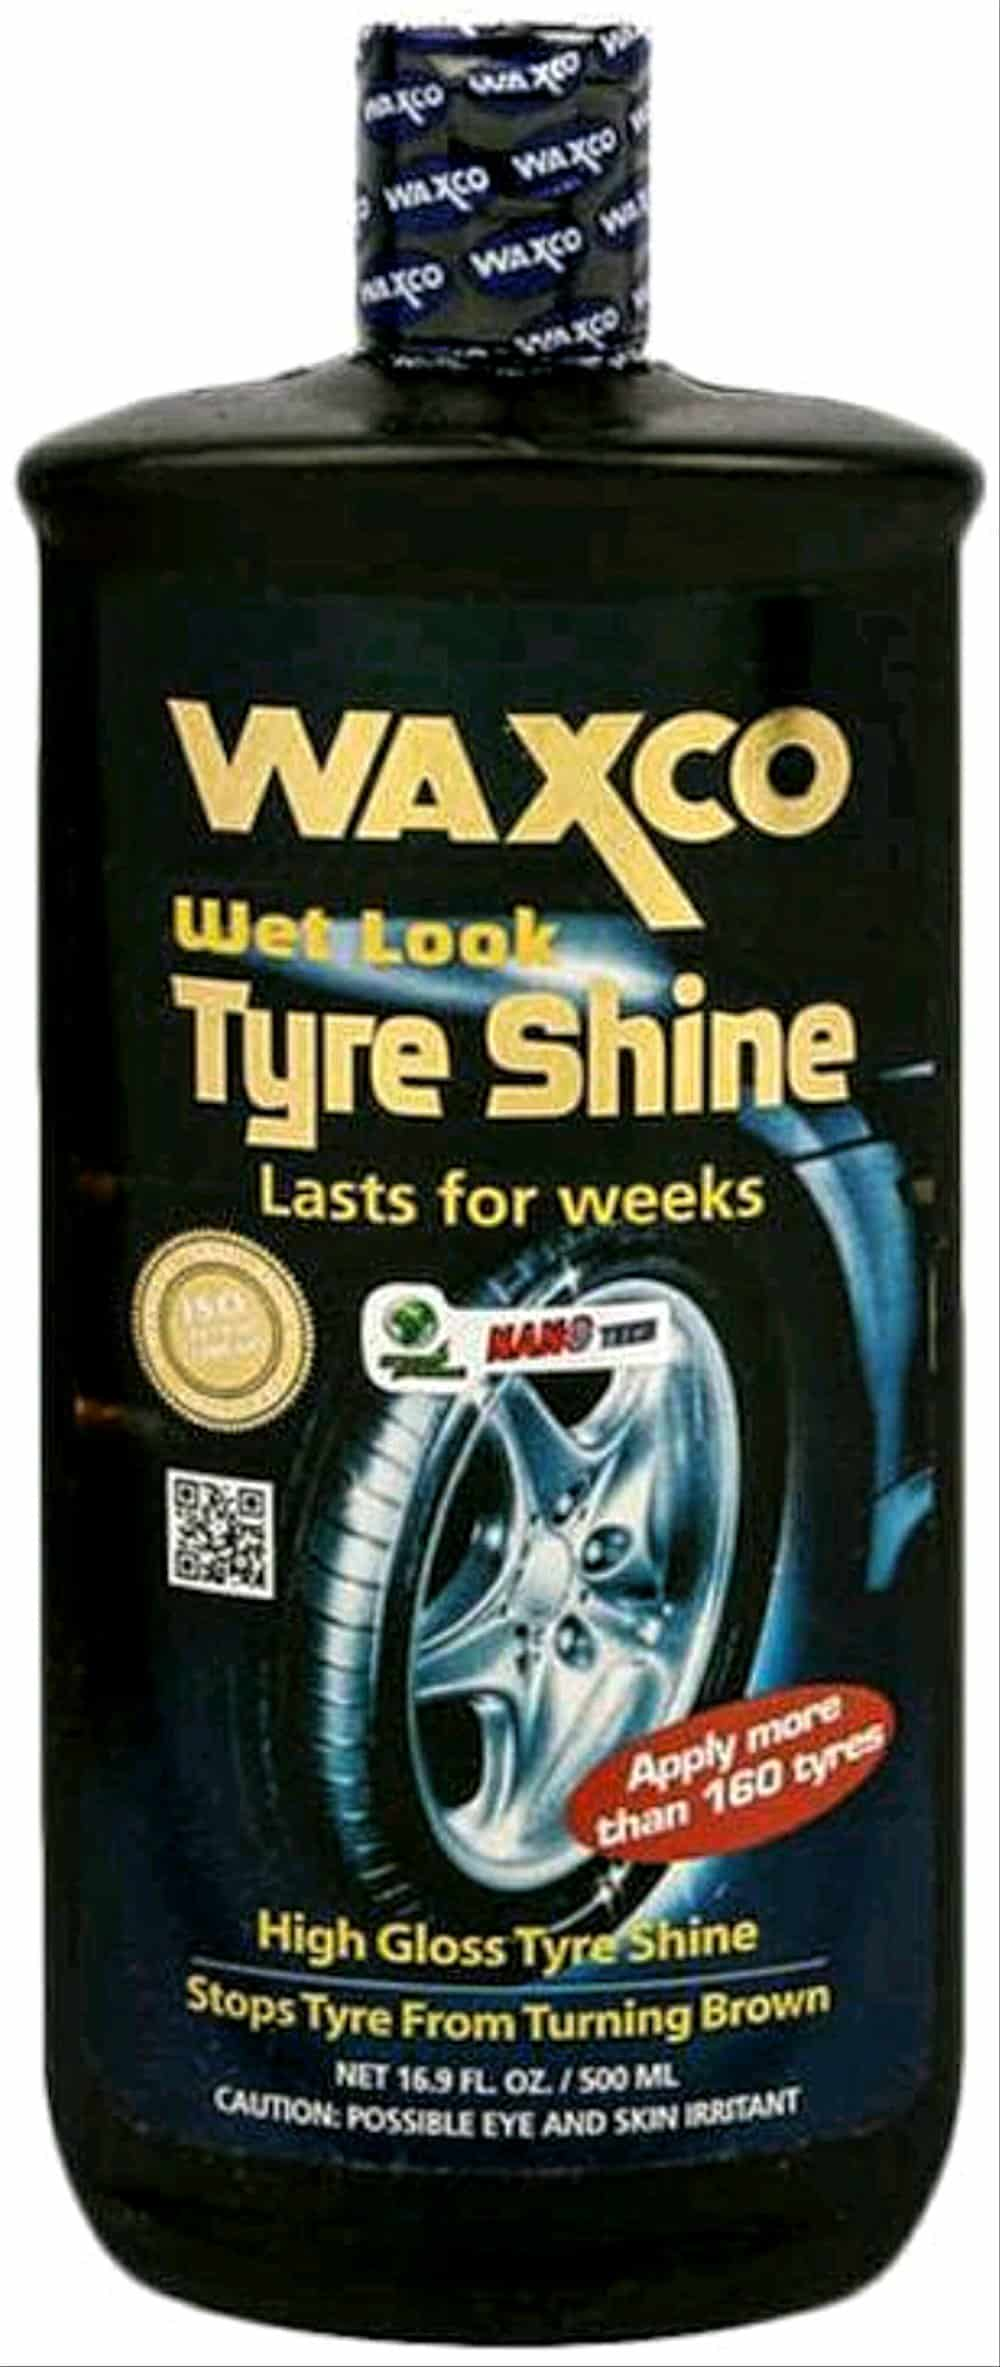 4. Waxco Nano Tech Wet Look Tyre Shine